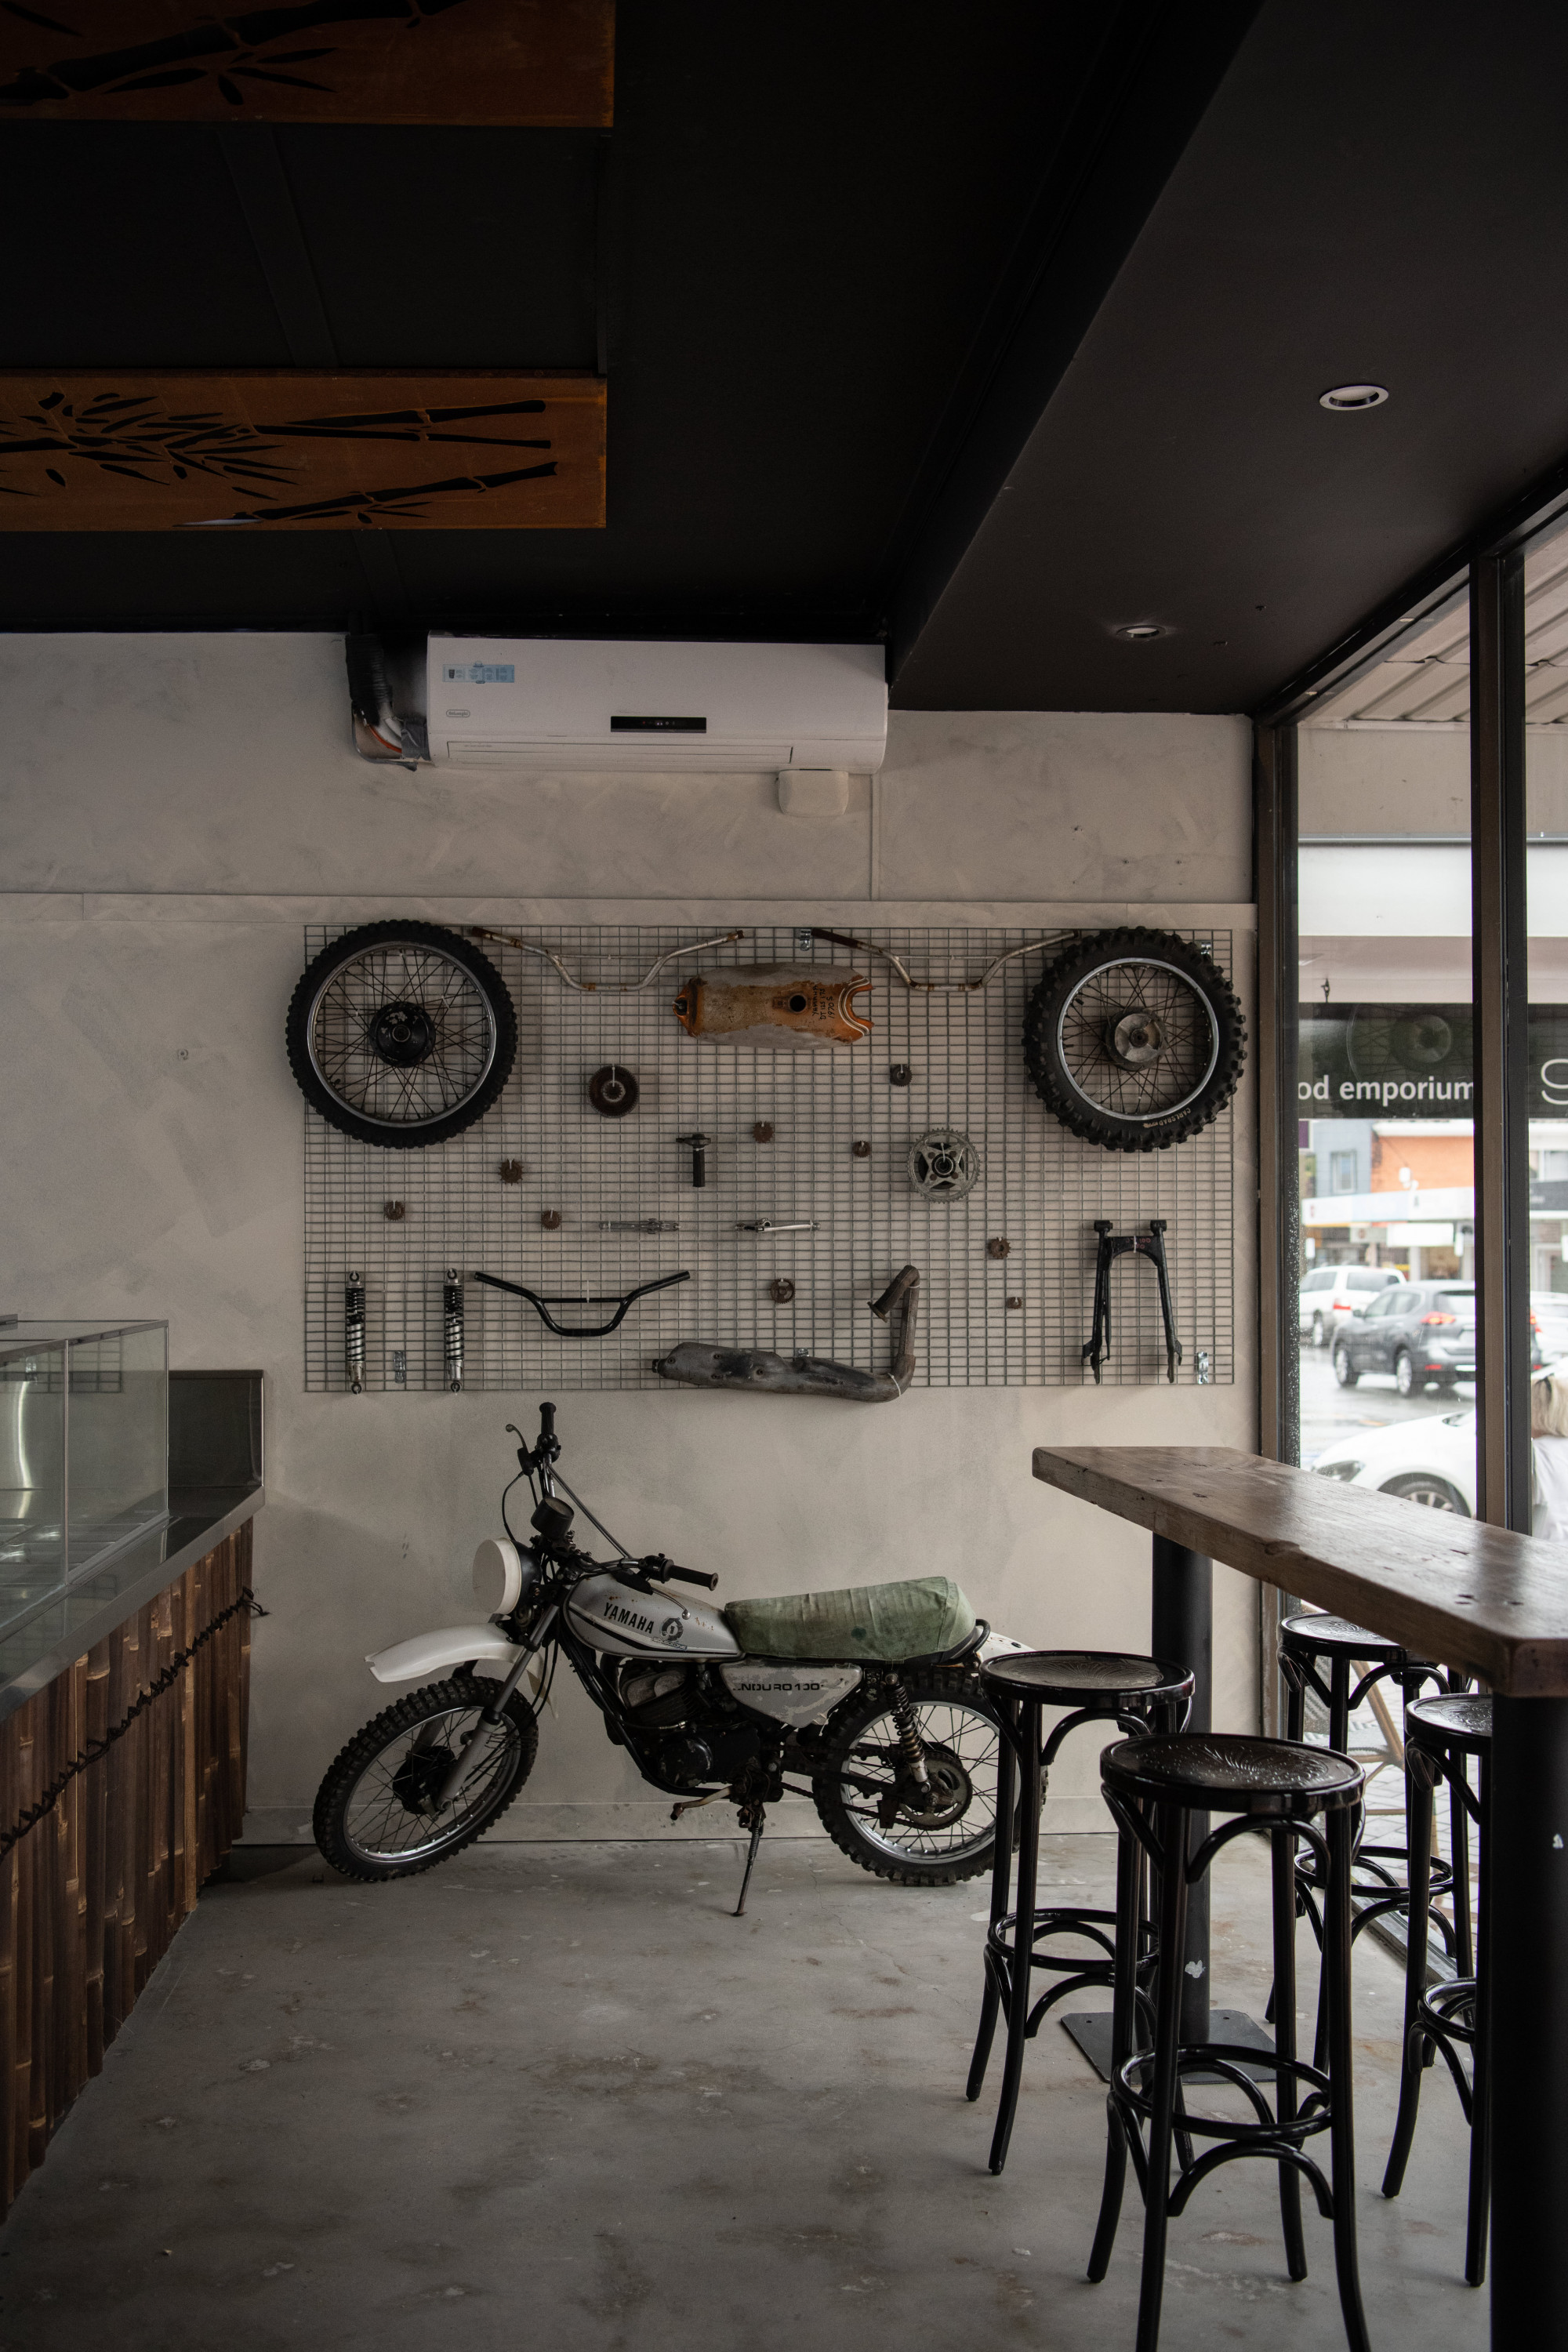 the interior of a banh mi shop with a motorcycle in it